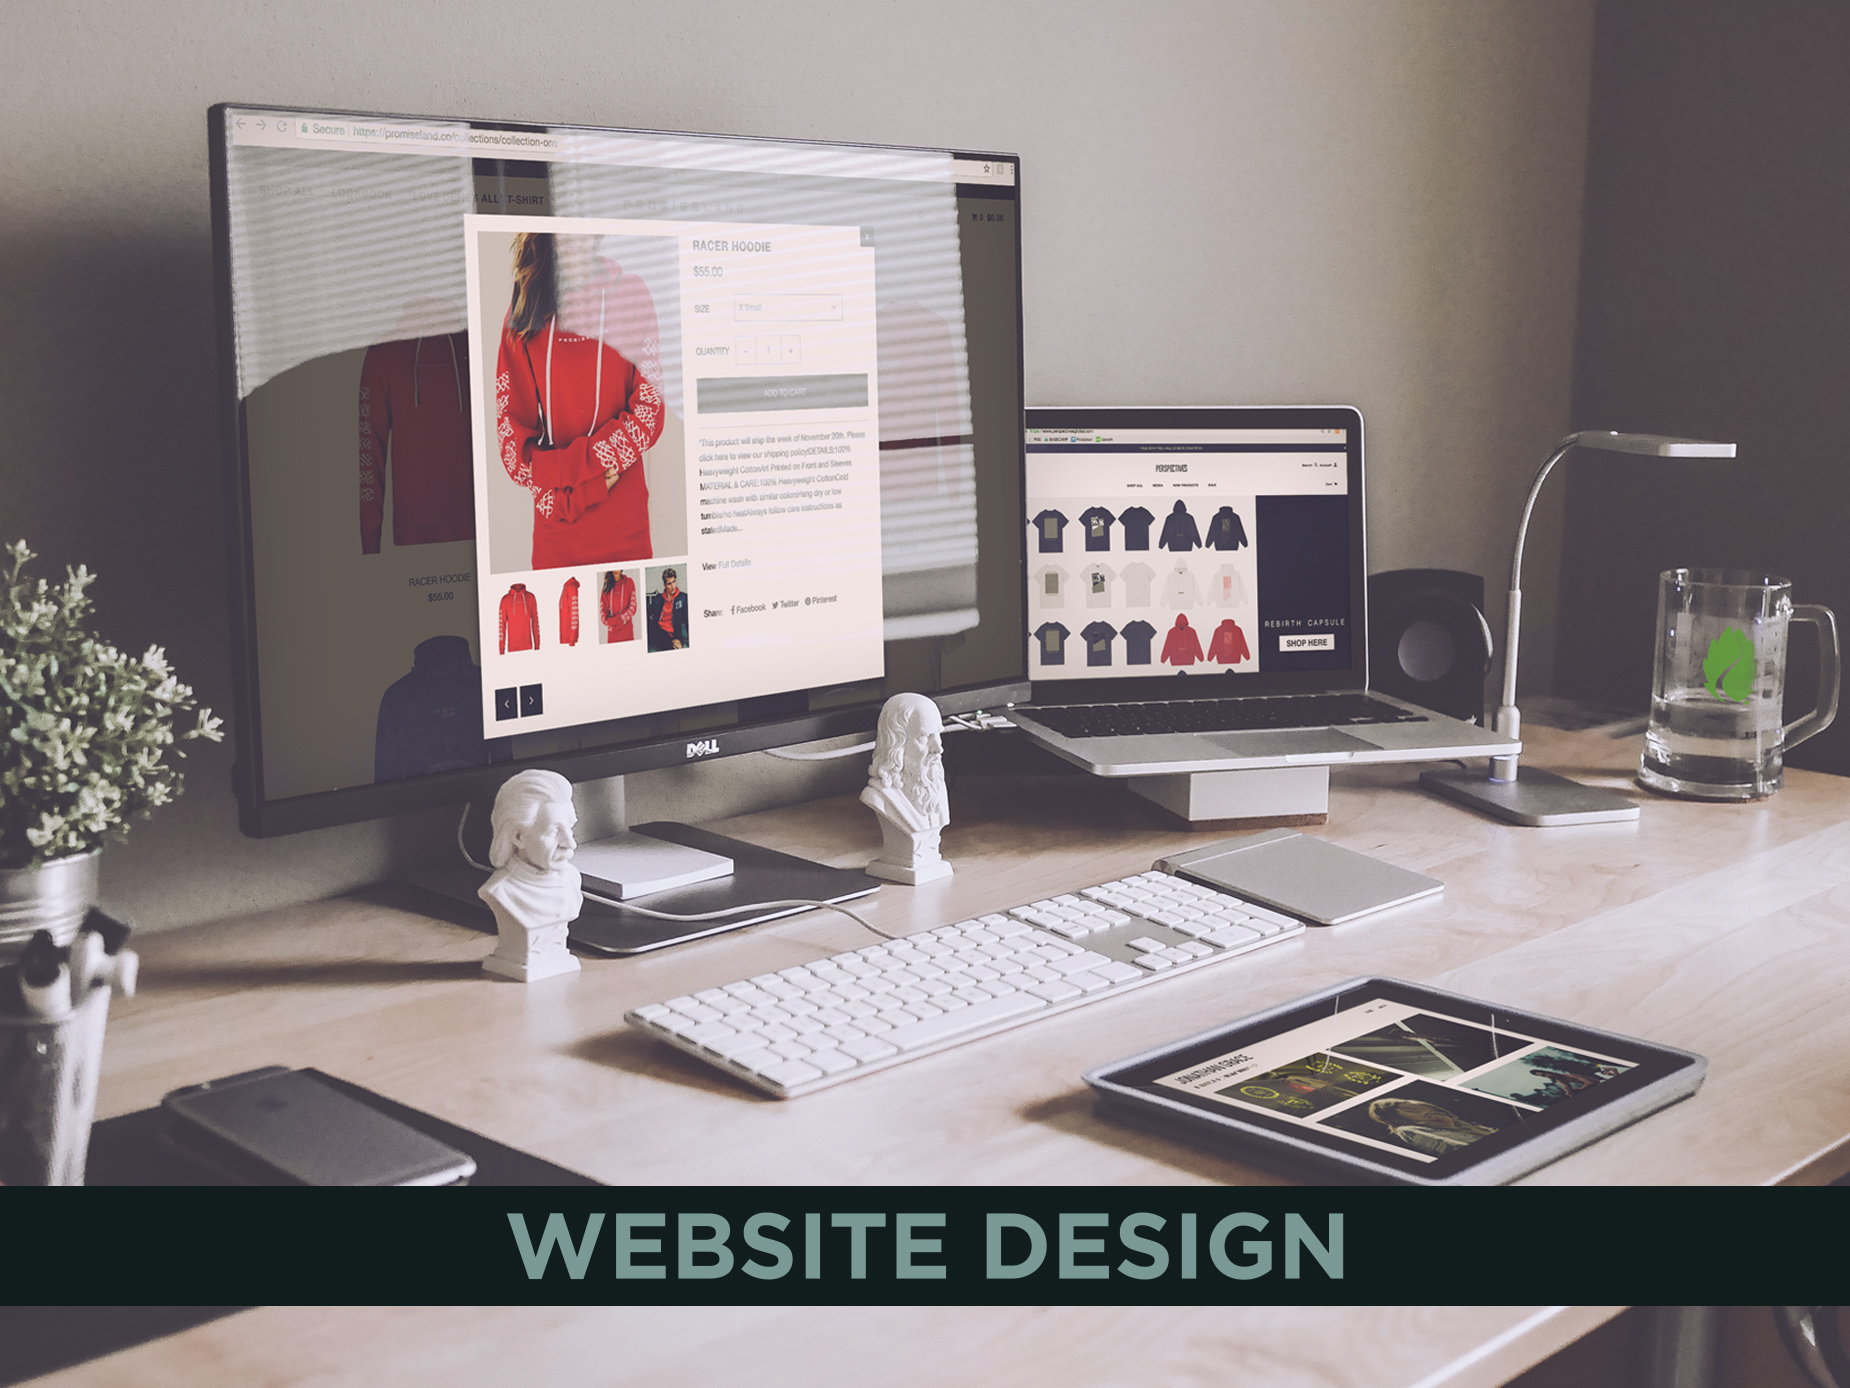 HEADER - Website Design.jpg